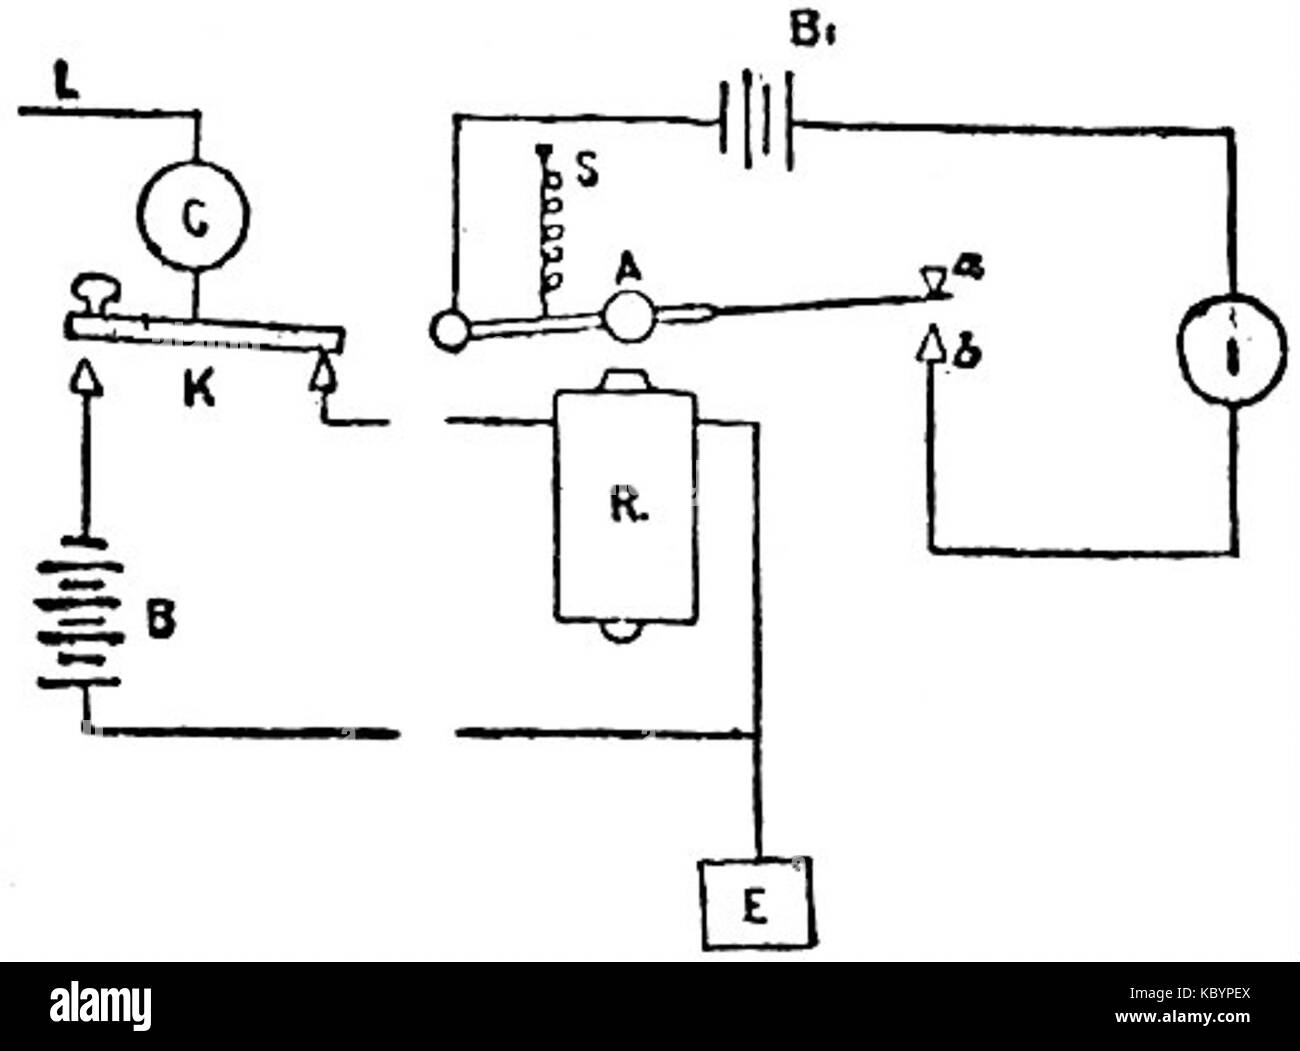 hight resolution of eb1911 telegraph single current relay working